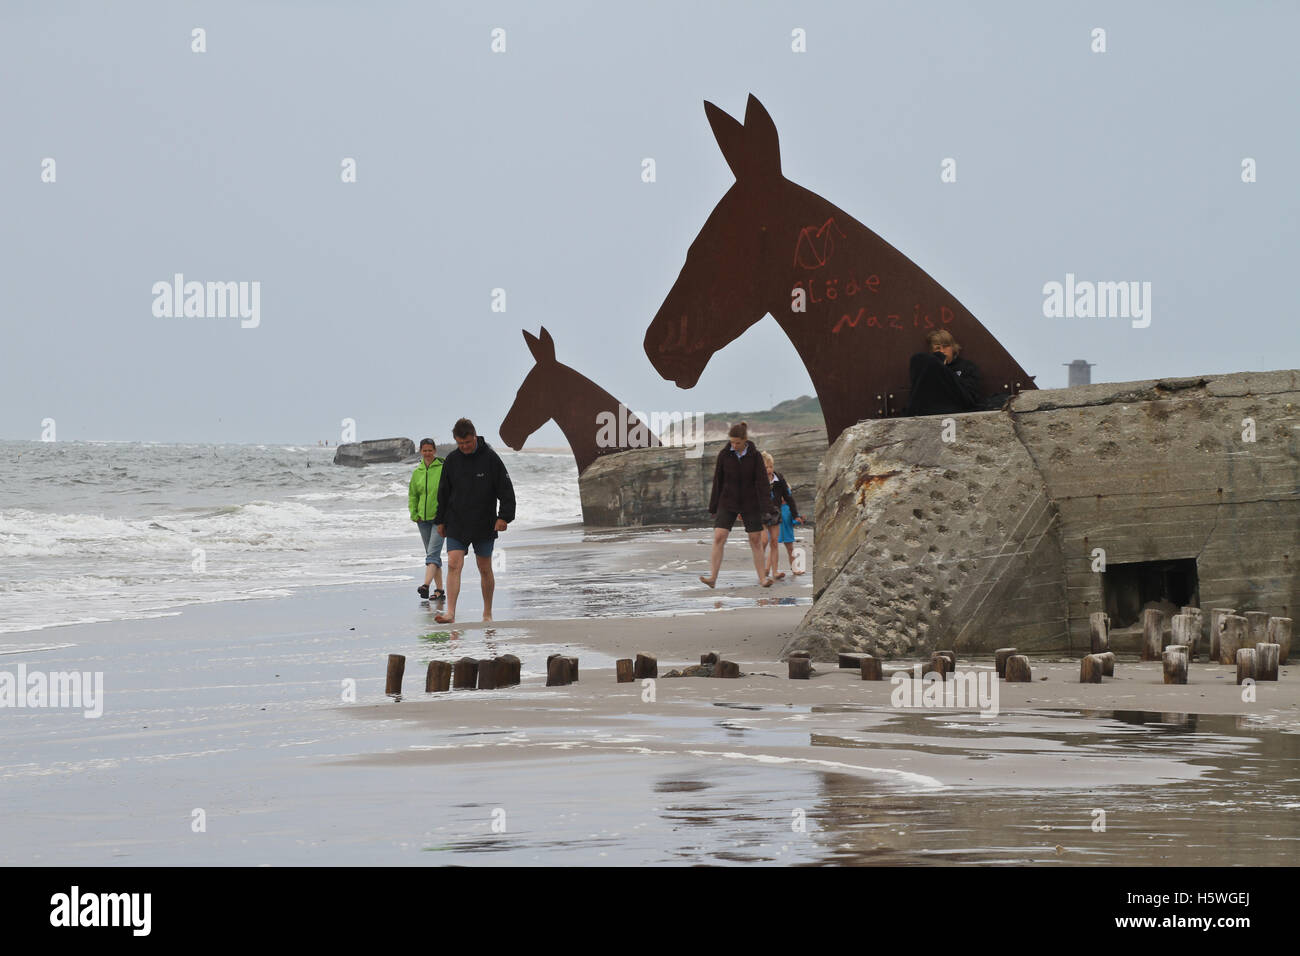 at the beach of blavand in denmark in the summer horse sculpture and stock photo 124107610 alamy. Black Bedroom Furniture Sets. Home Design Ideas